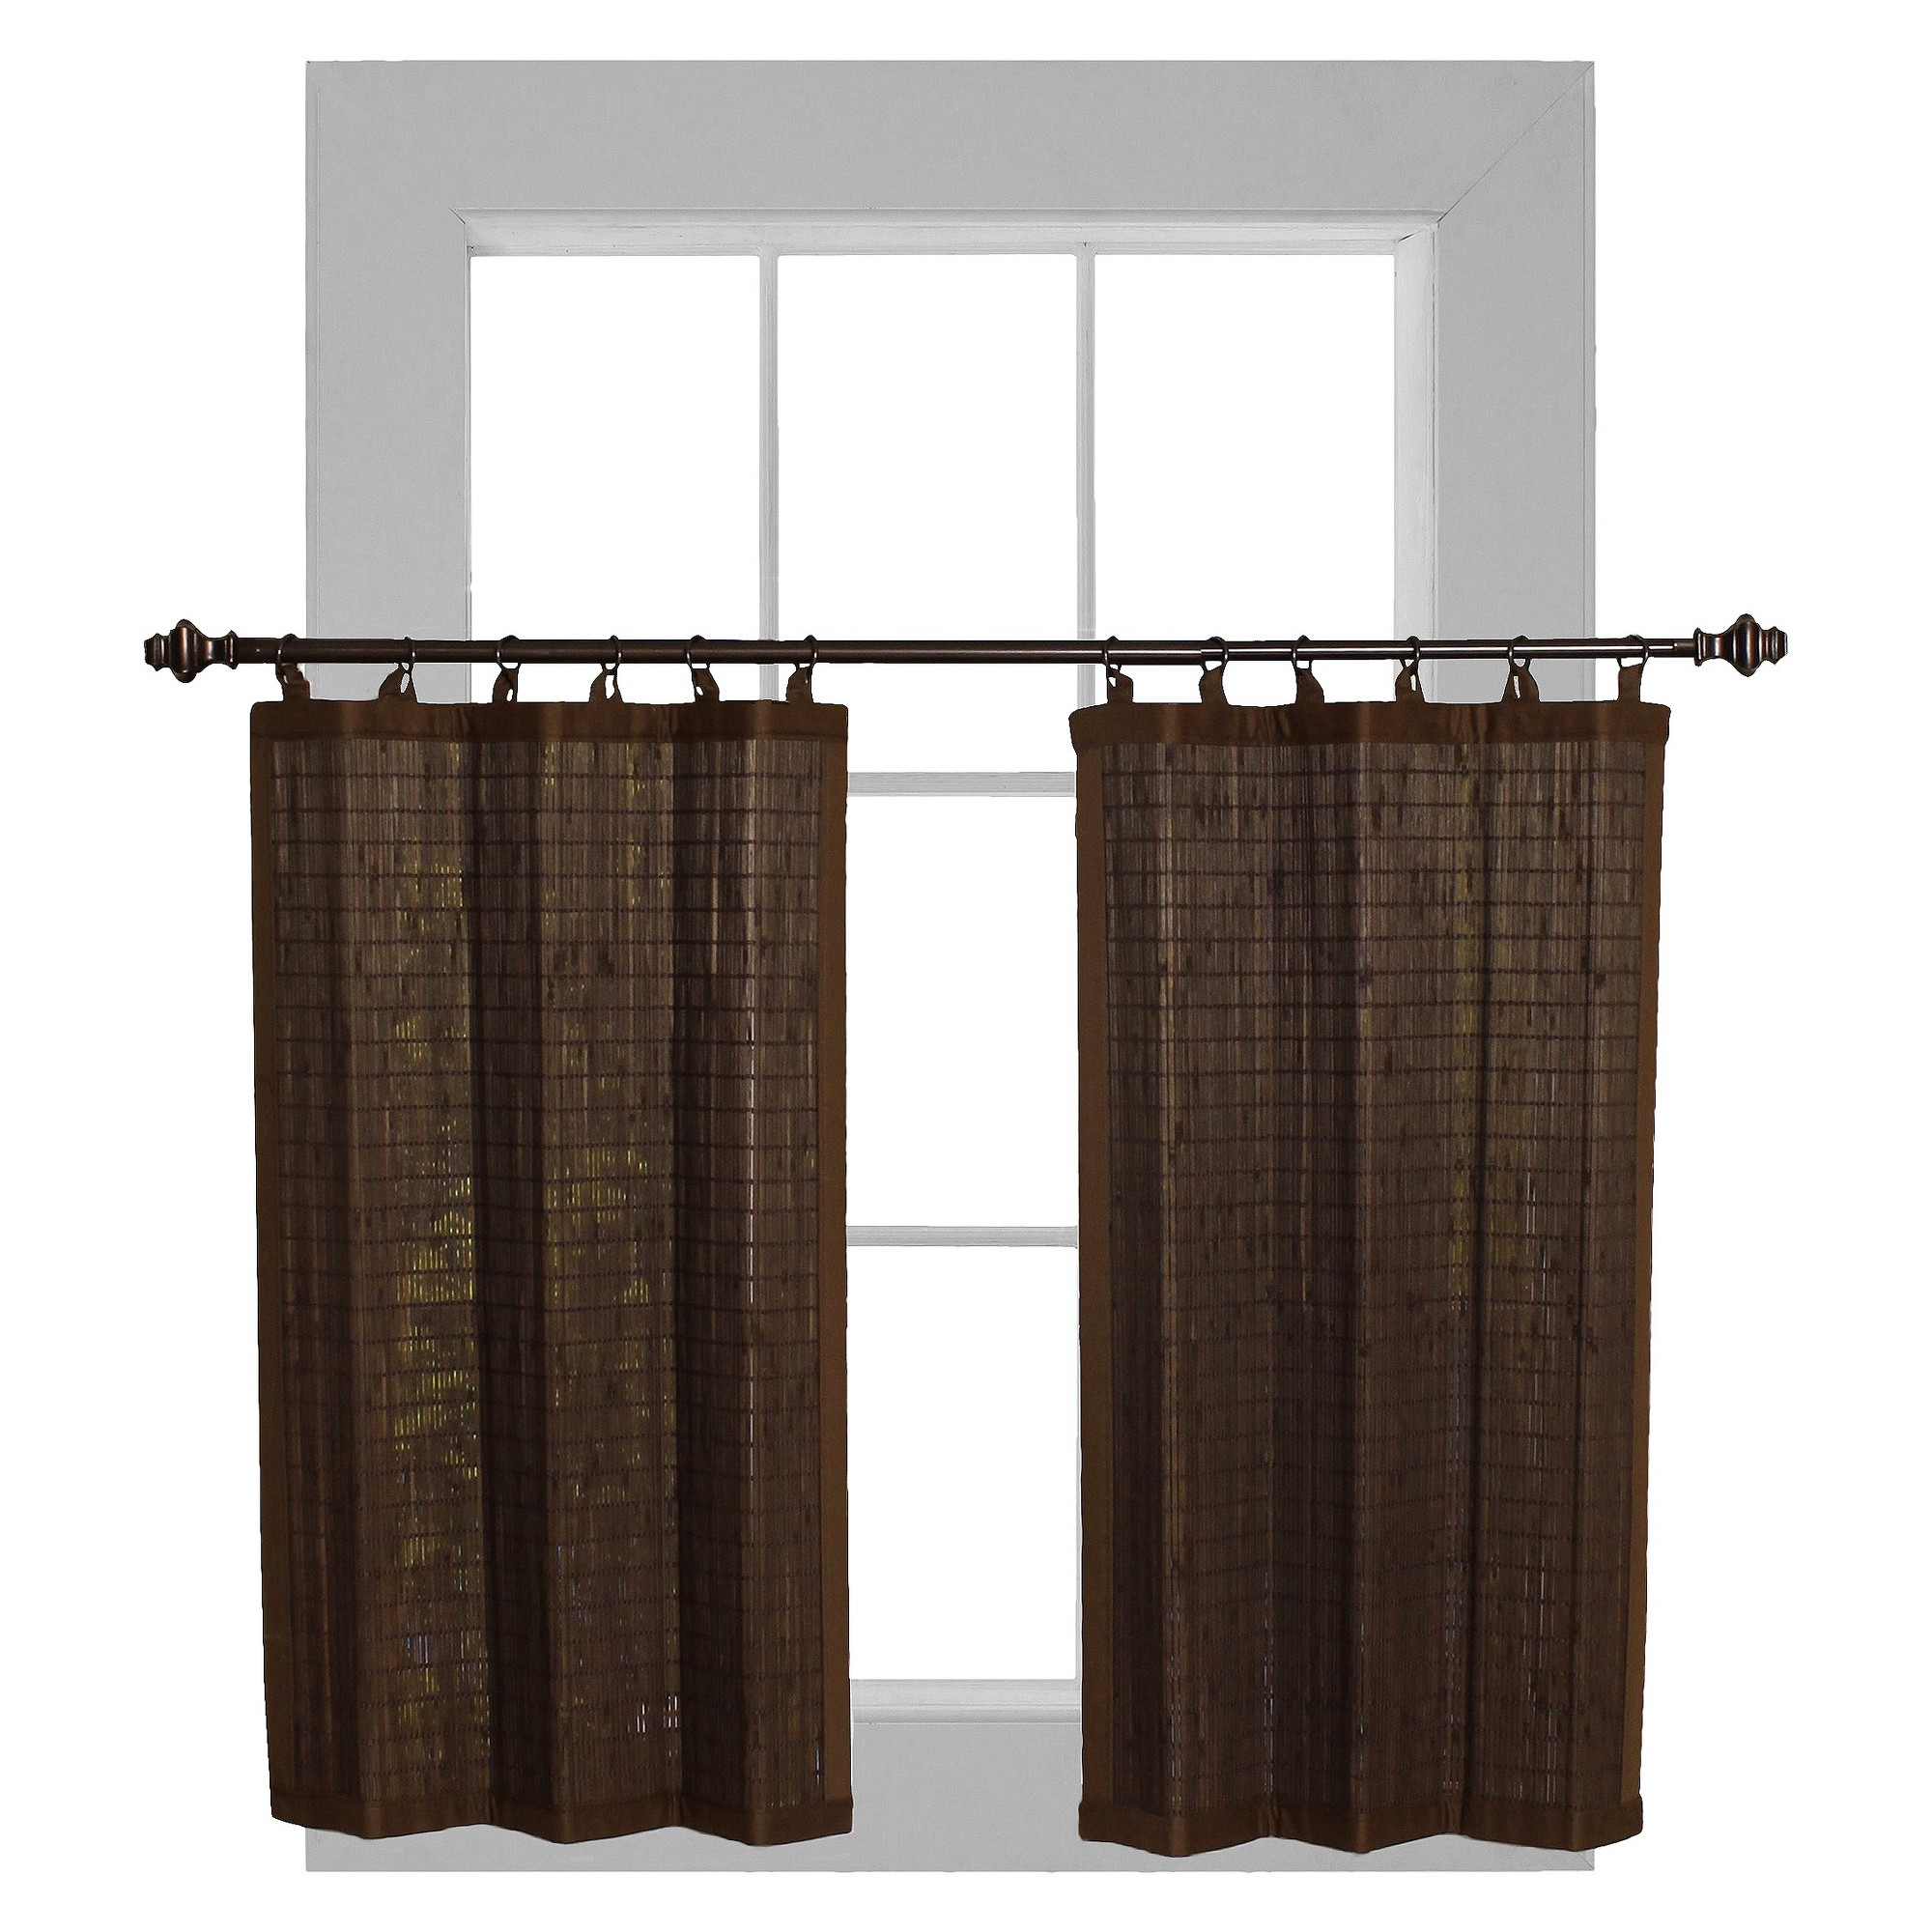 'Curtain Tier Set Bamboo Ring Top Espresso (24''x36'') - Versailles , Size: 24x36'', Brown'